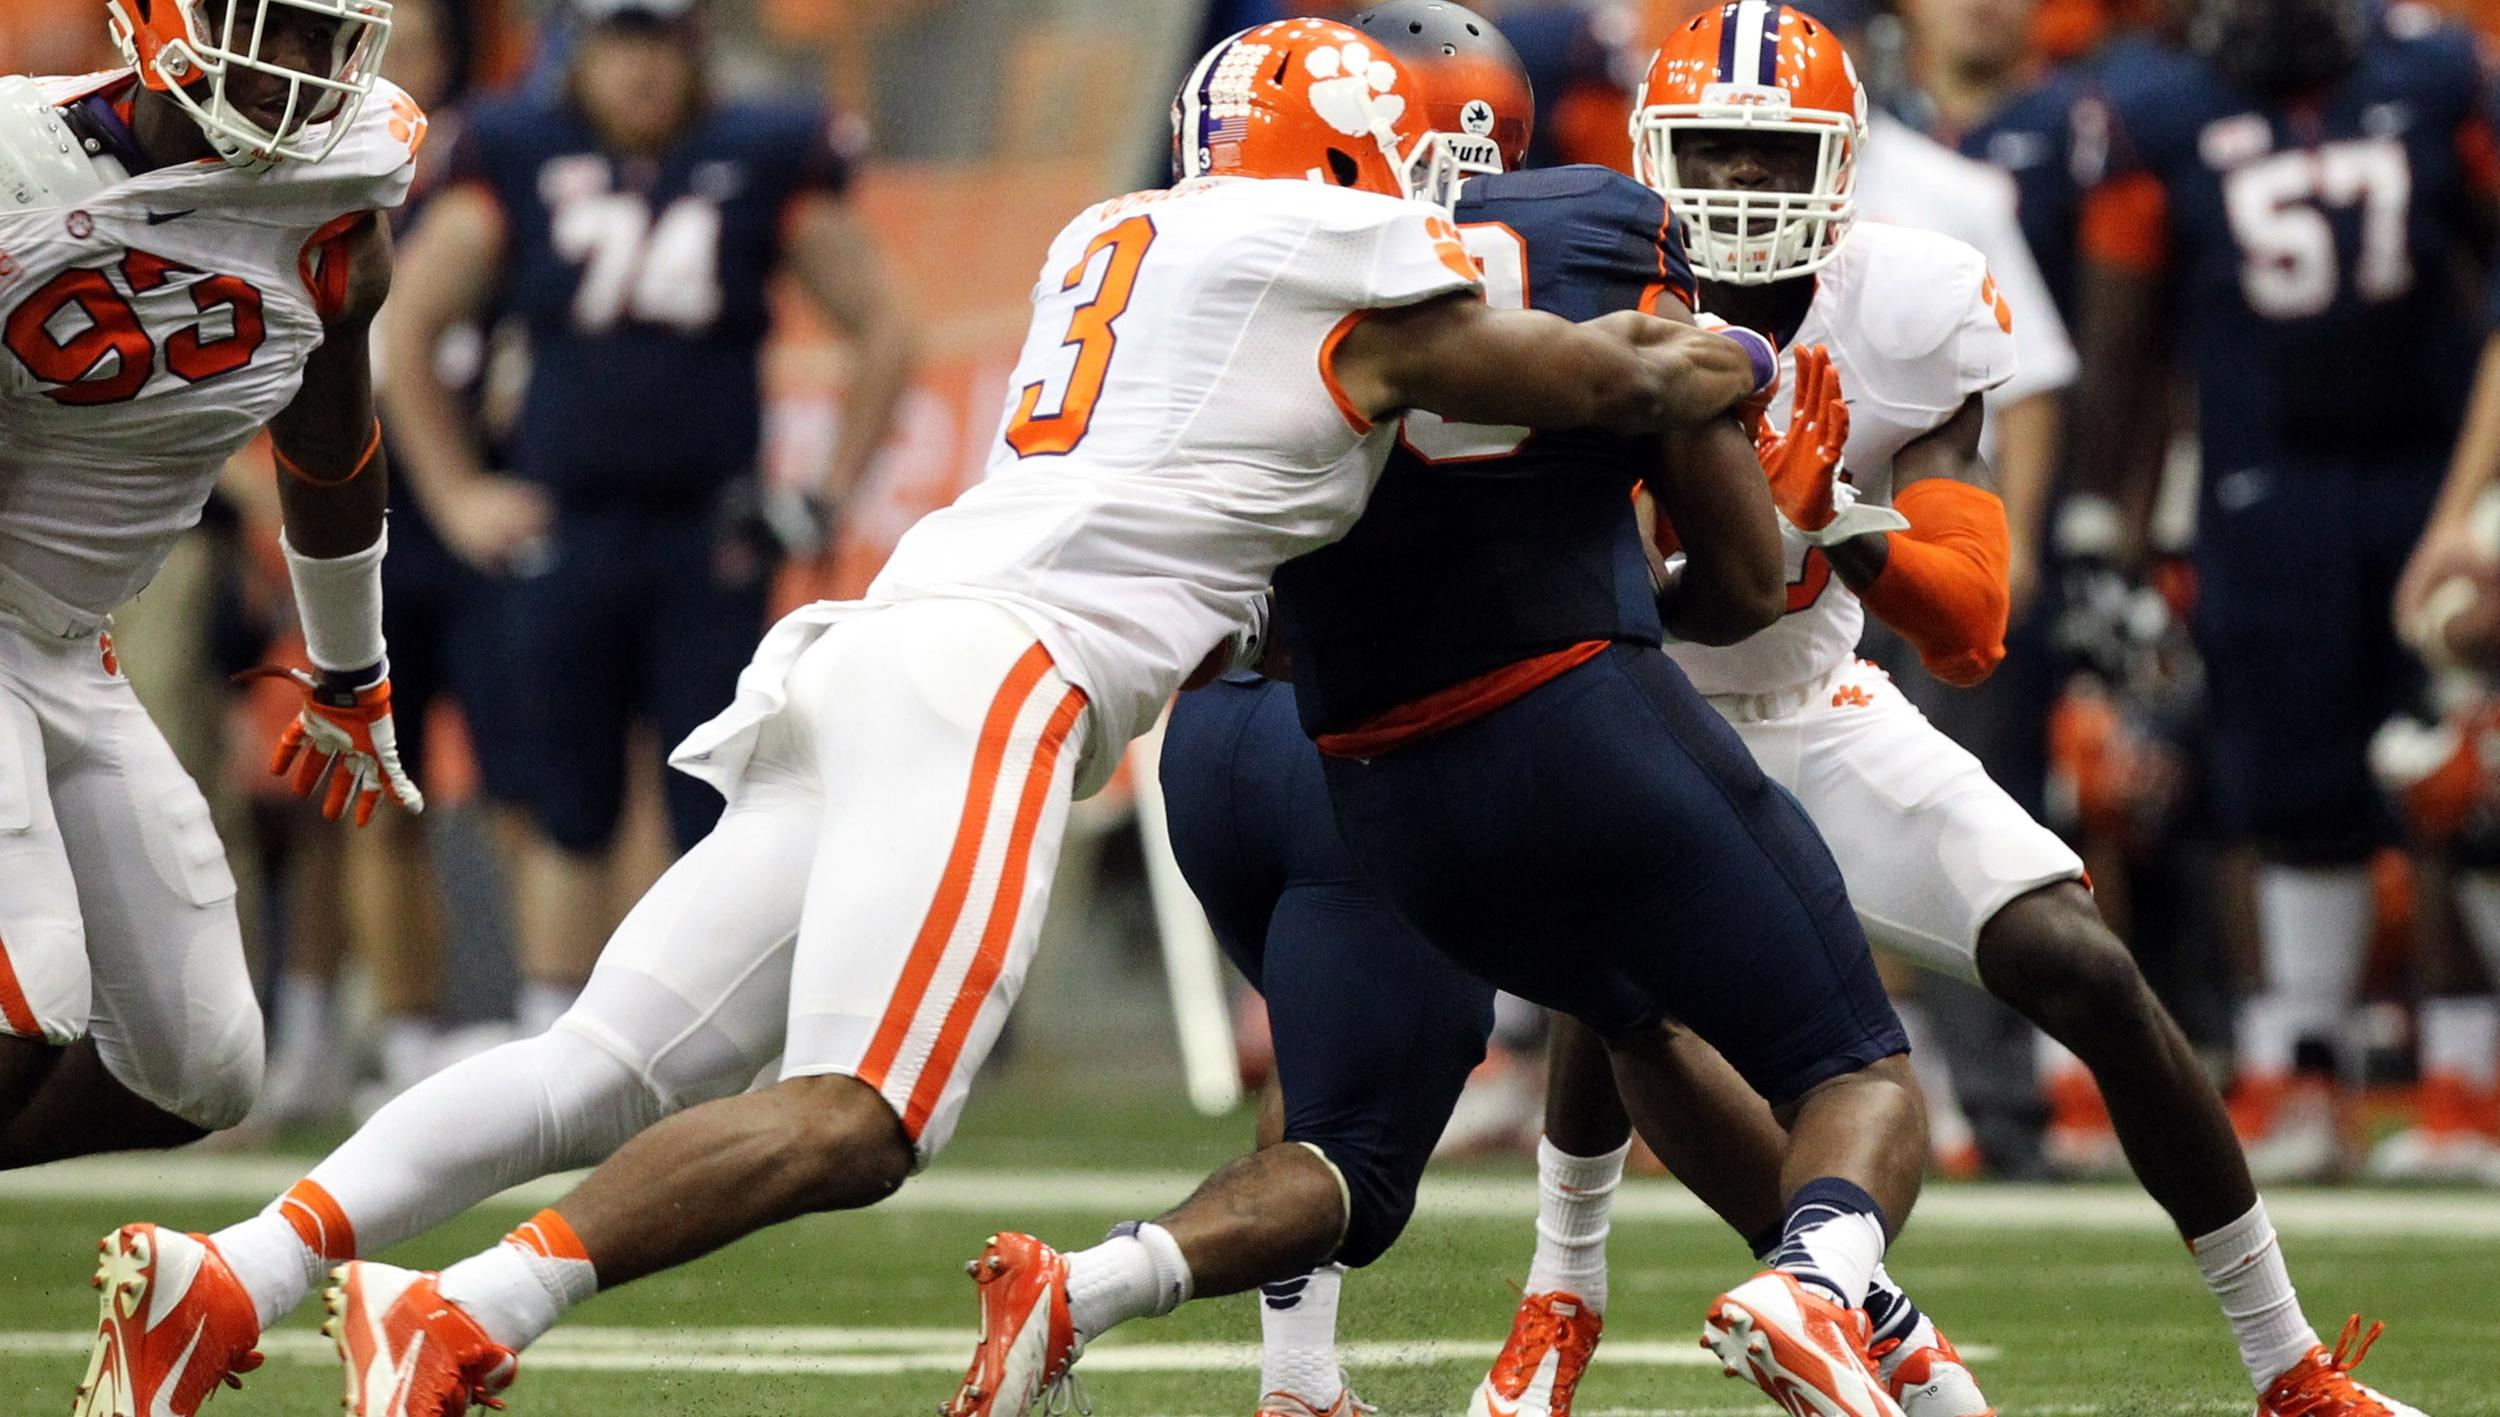 Vic Beasley One of Top 25 Players by Sporting News